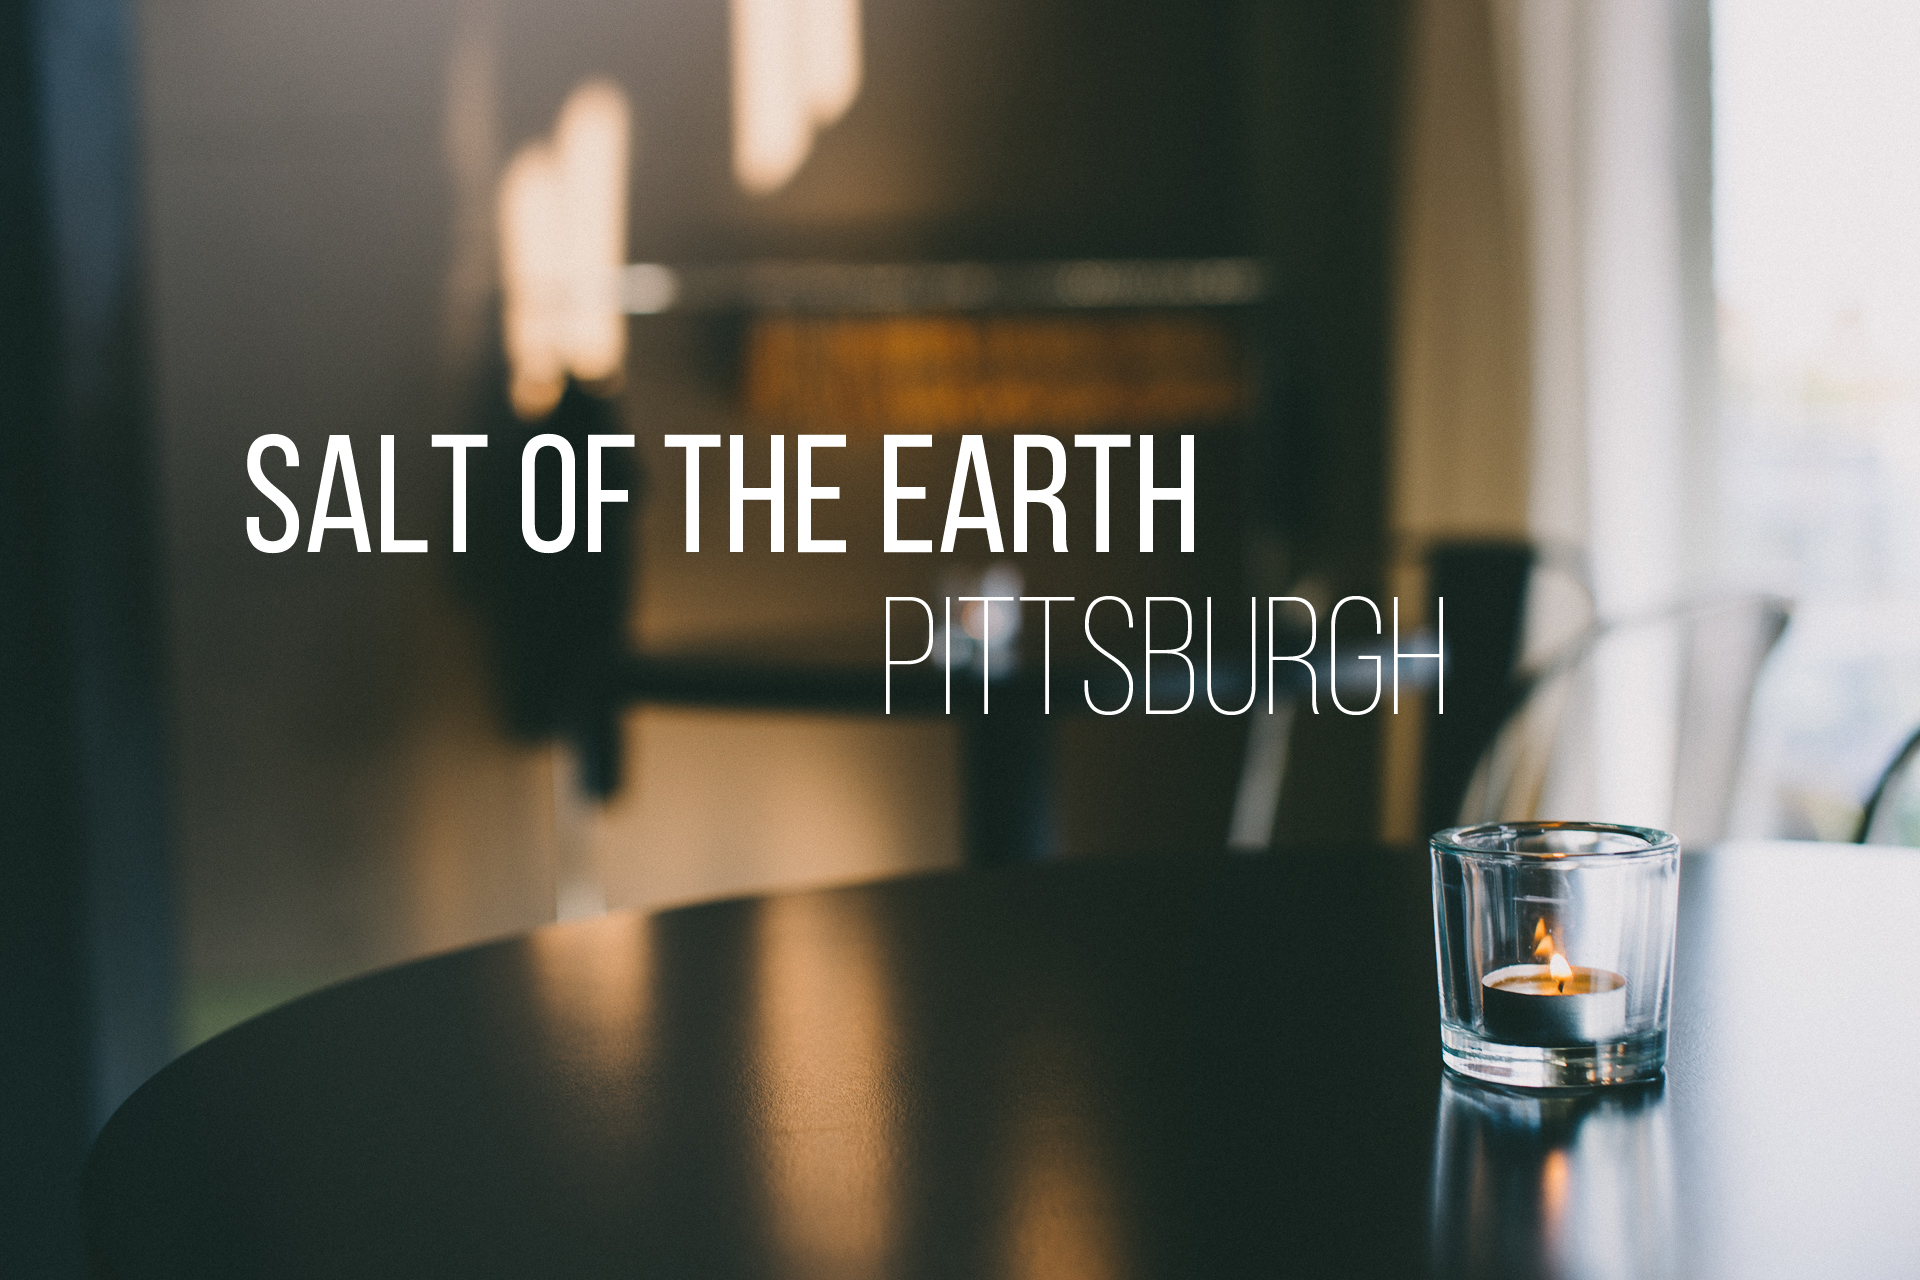 Salt of the Earth, Pittsburgh